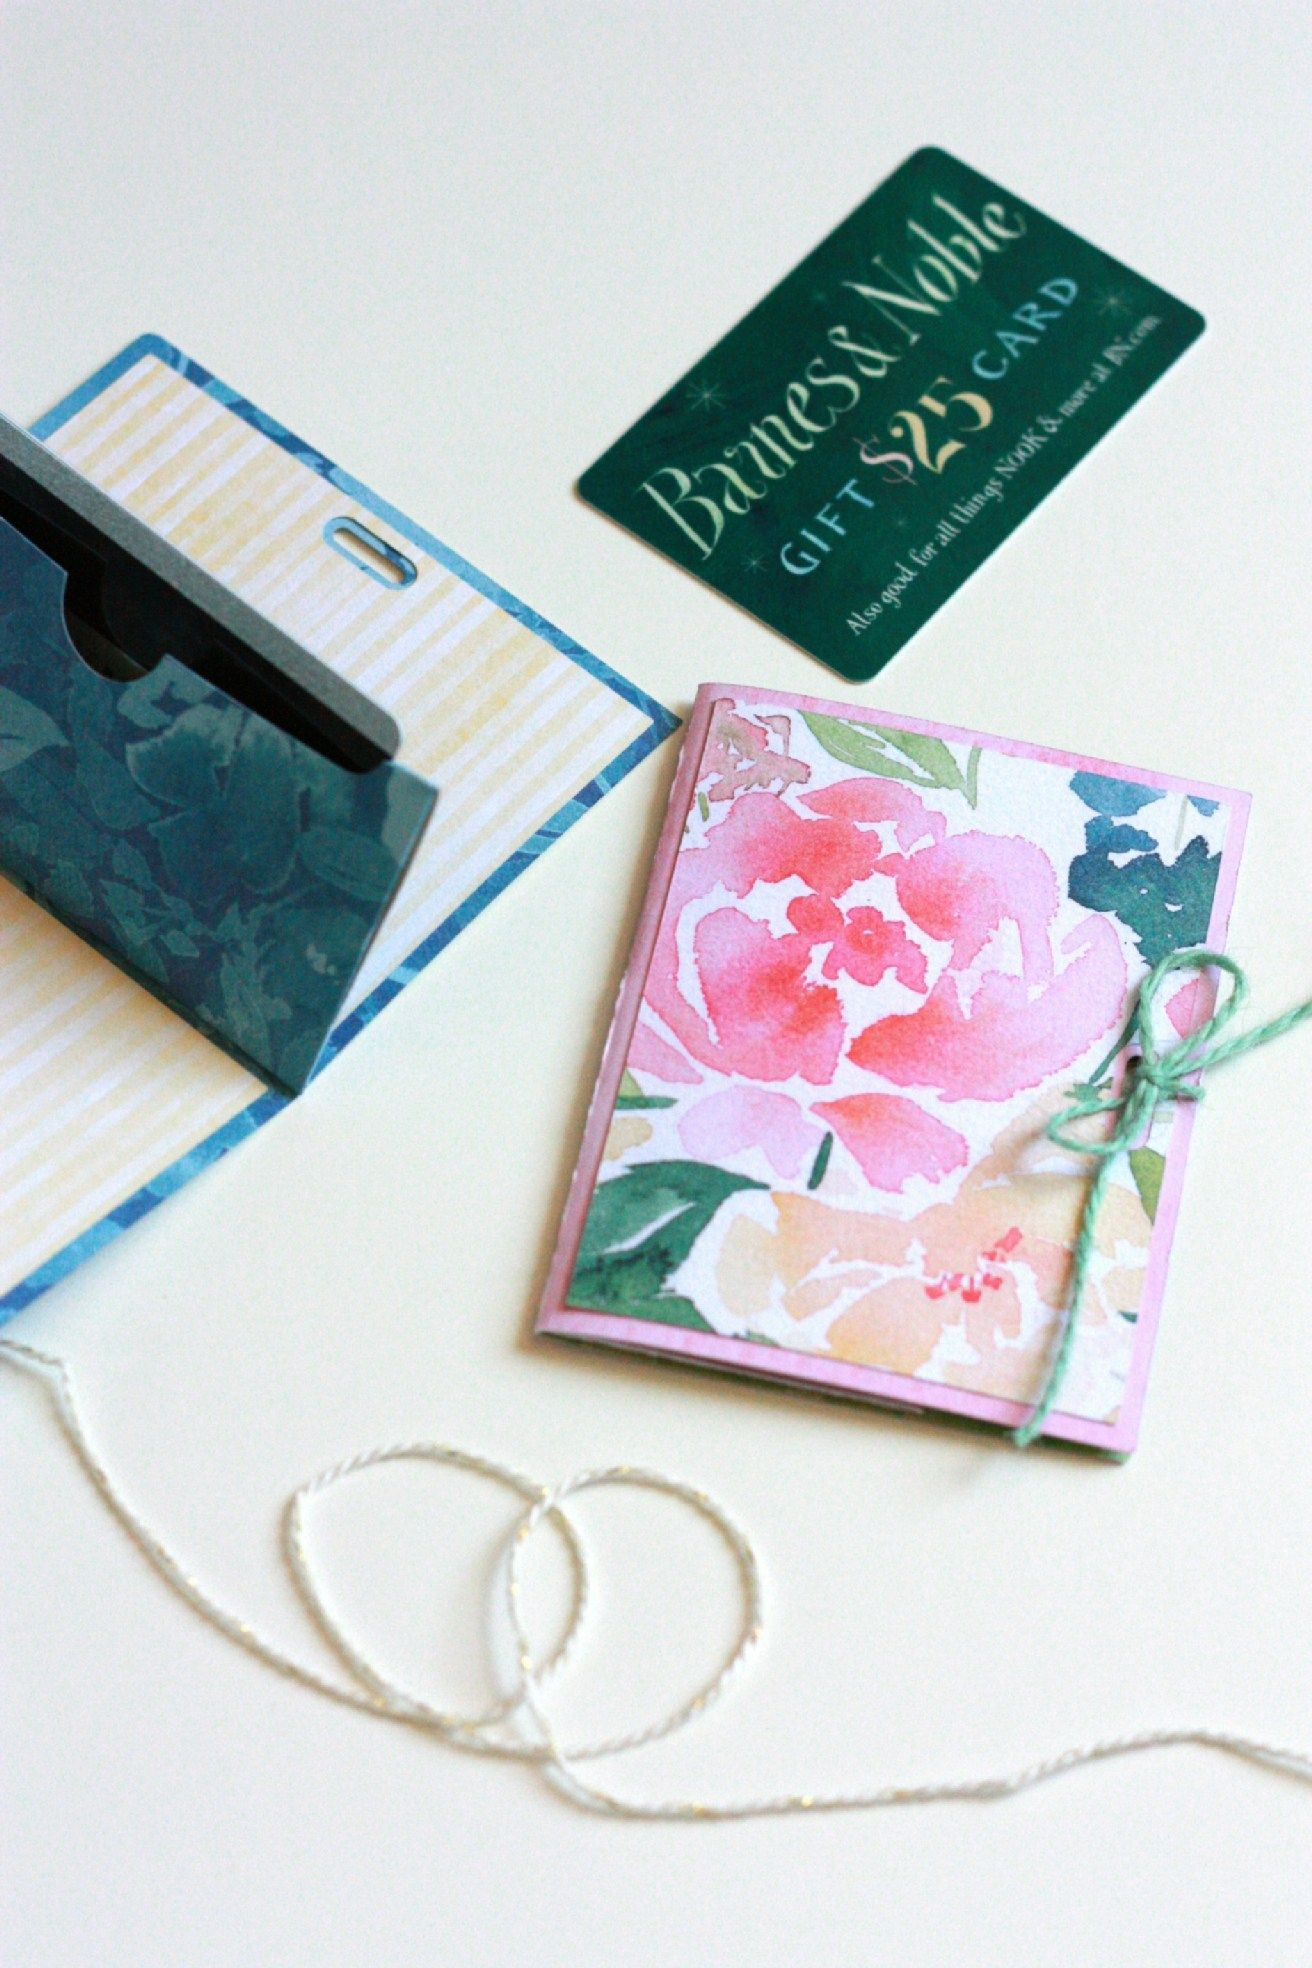 diy gift card holder with cricut explore air 2 with